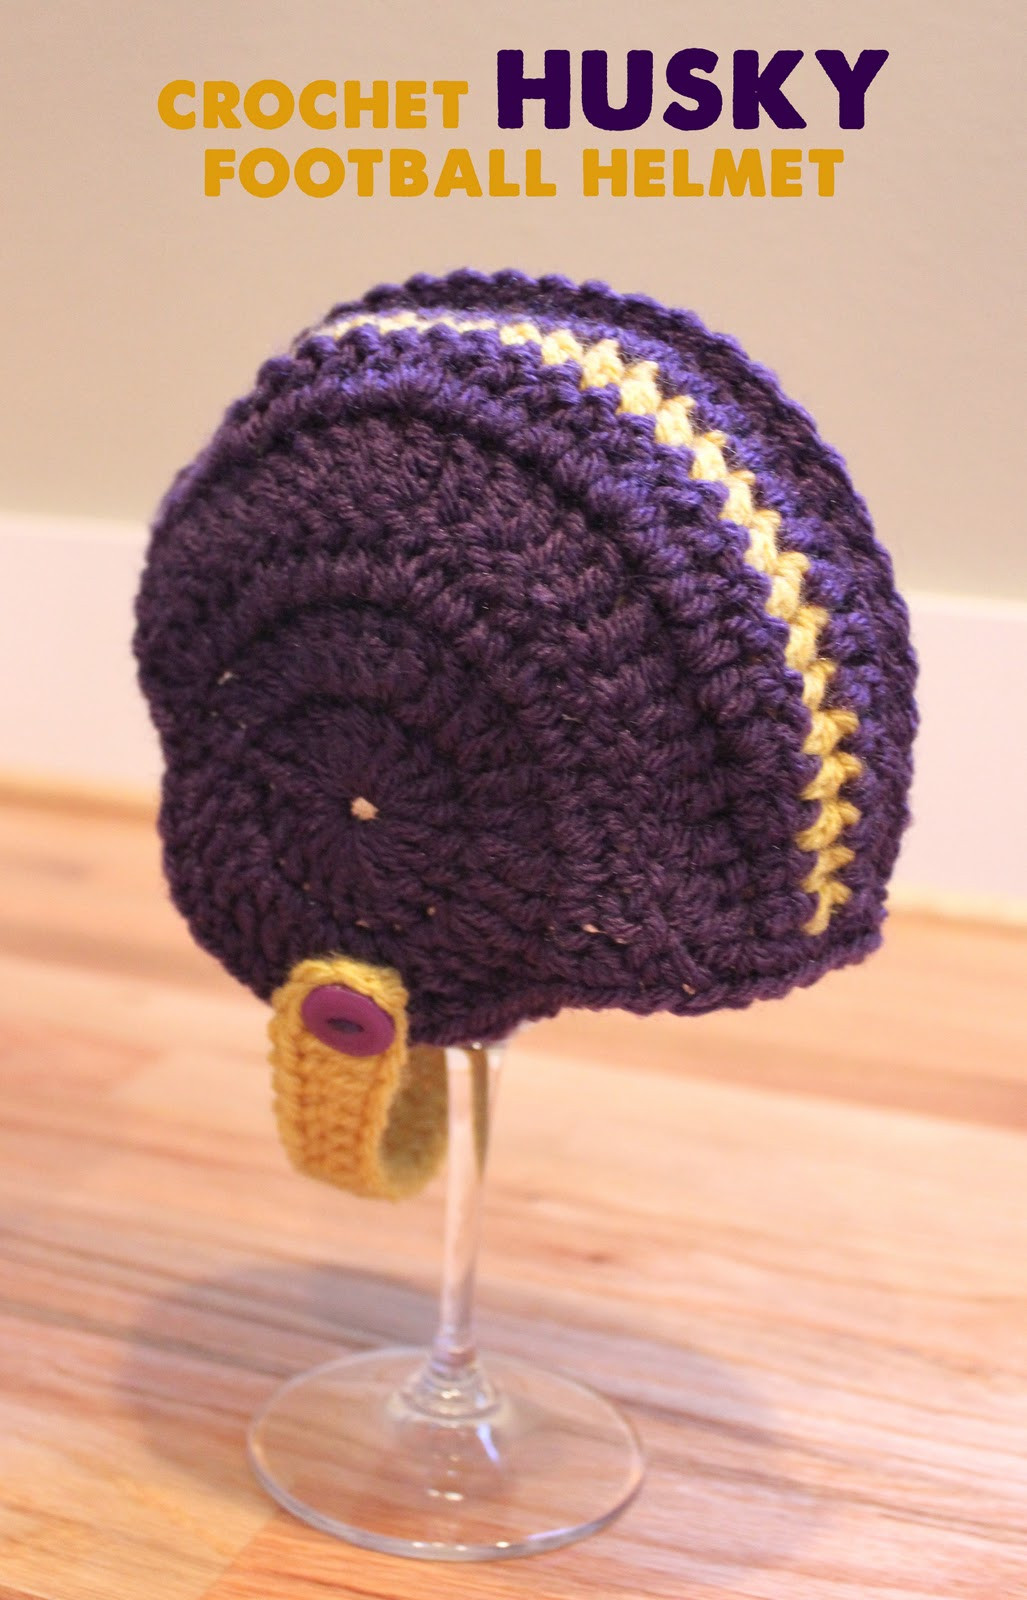 Fresh Repeat Crafter Me Crocheted Football Helmets Crochet Football Helmets Of Best Of Breezybot Free Pattern Baby Crochet Football Helmet Crochet Football Helmets